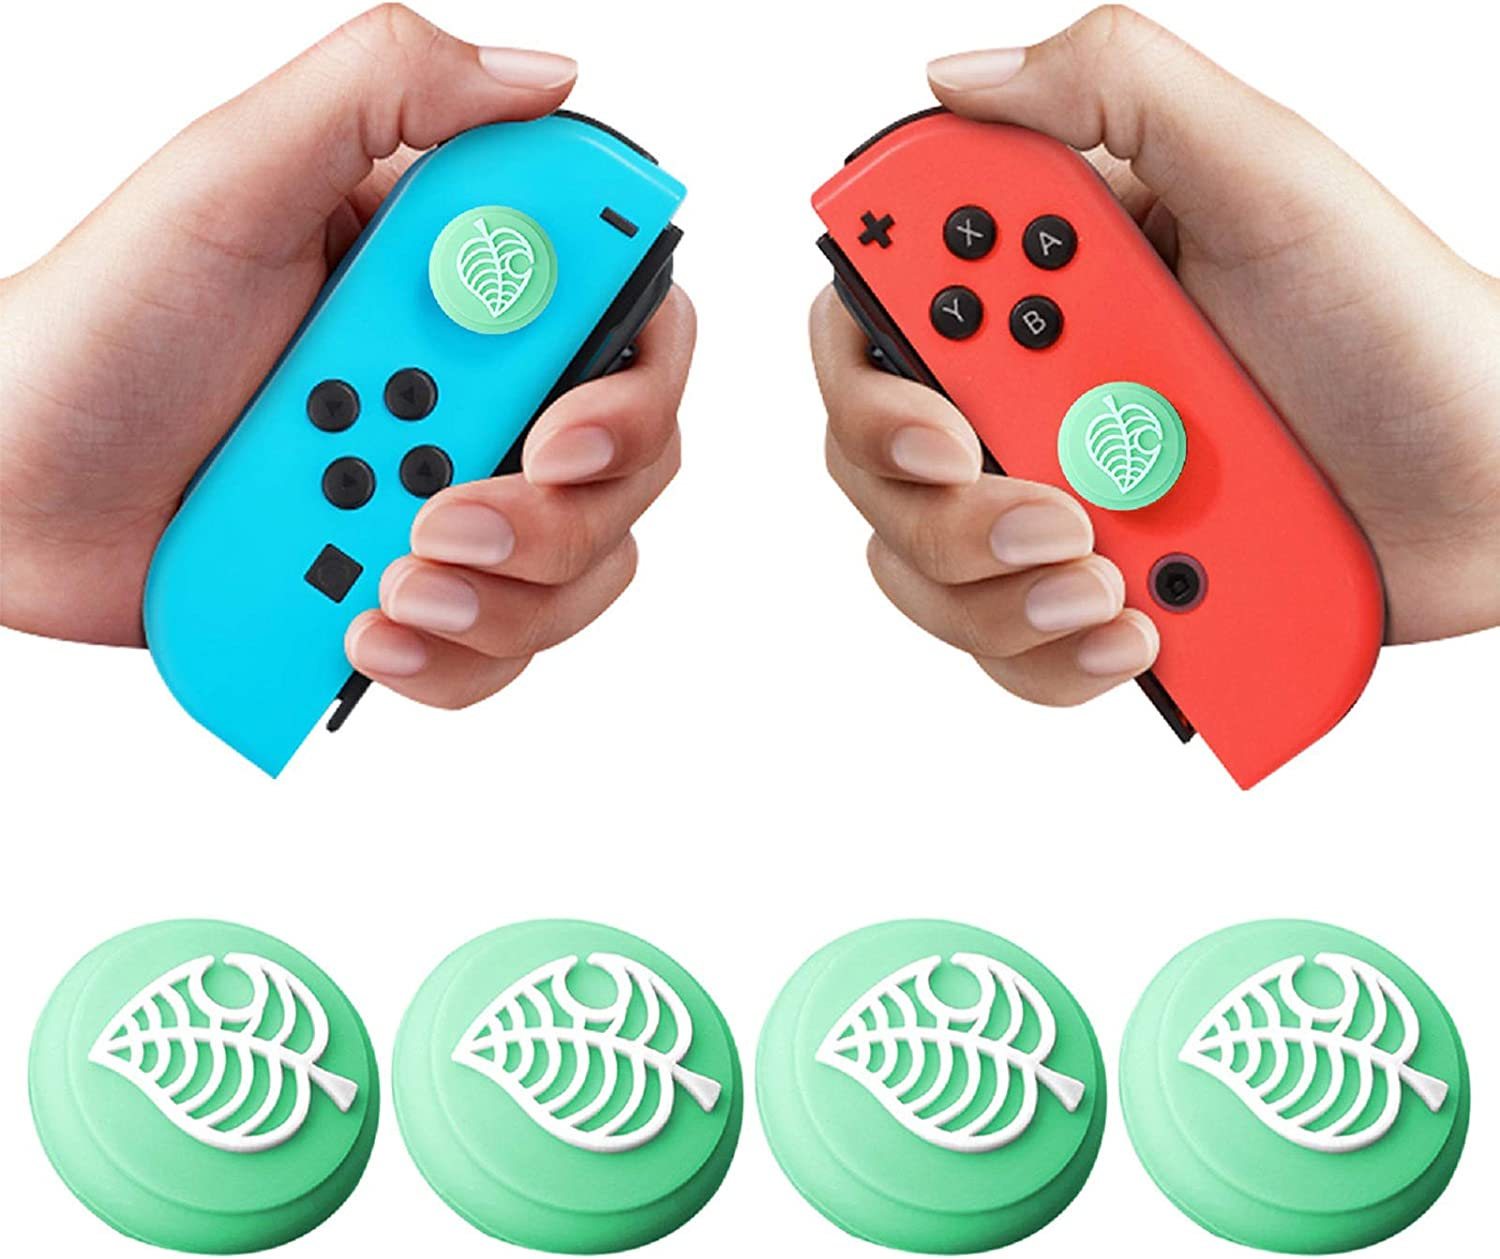 4 PCS Joystick Thumb Grip Caps for Switch & Switch Lite Joystick Cover, Cute Leaves Silicone Joystick Cap Joy-con Cover Analog Caps for NS Controller Accessories (Green): Amazon.es: Electrónica